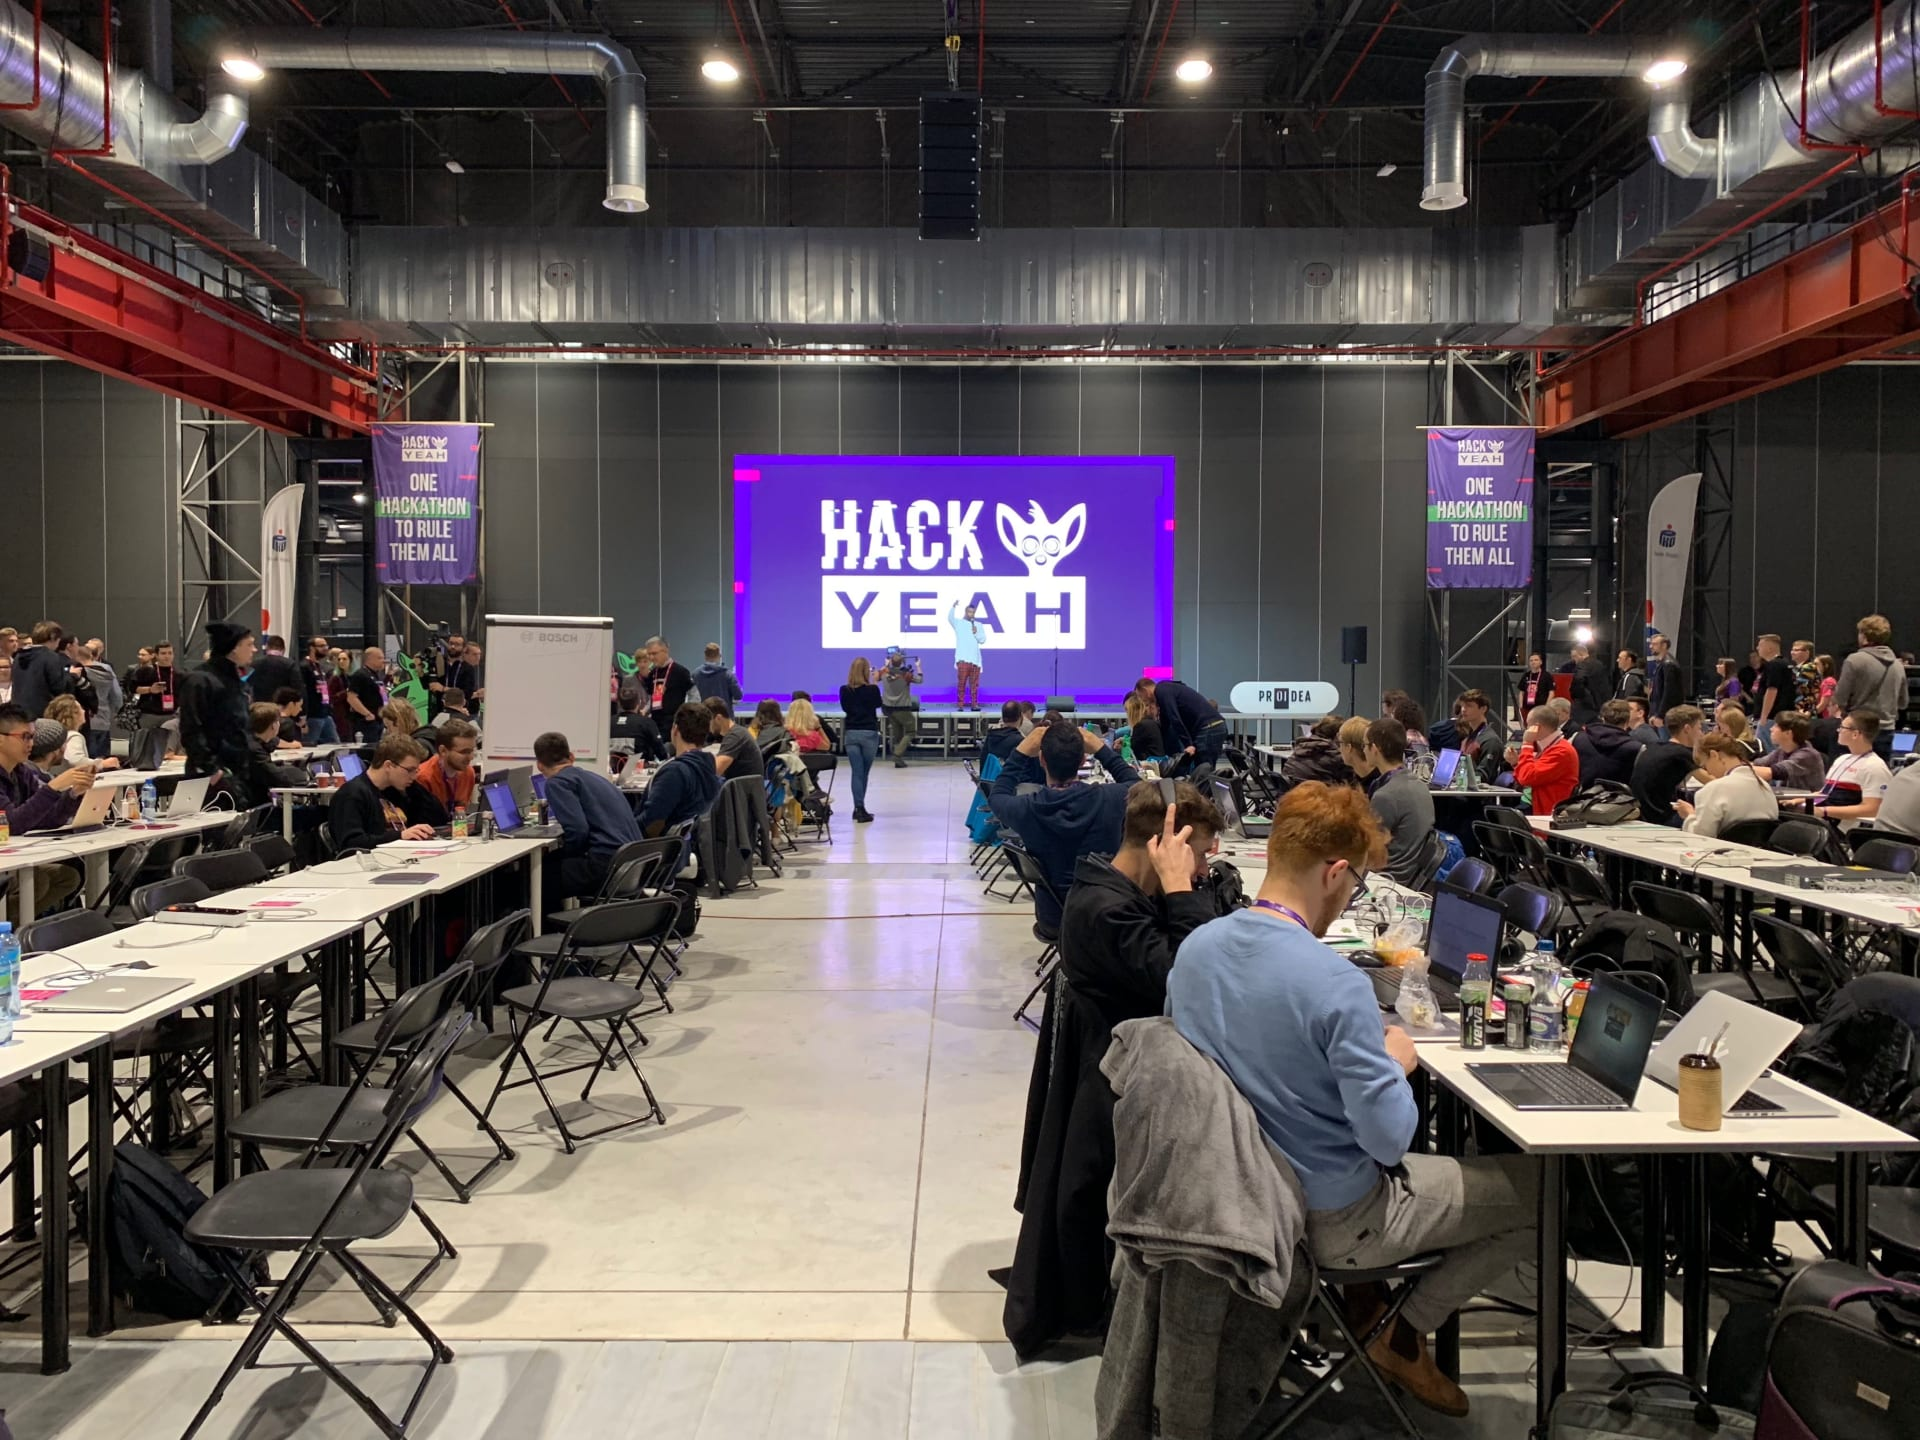 HackYeah 2018 – Boldare Team at the biggest stationary hackathon in the world!